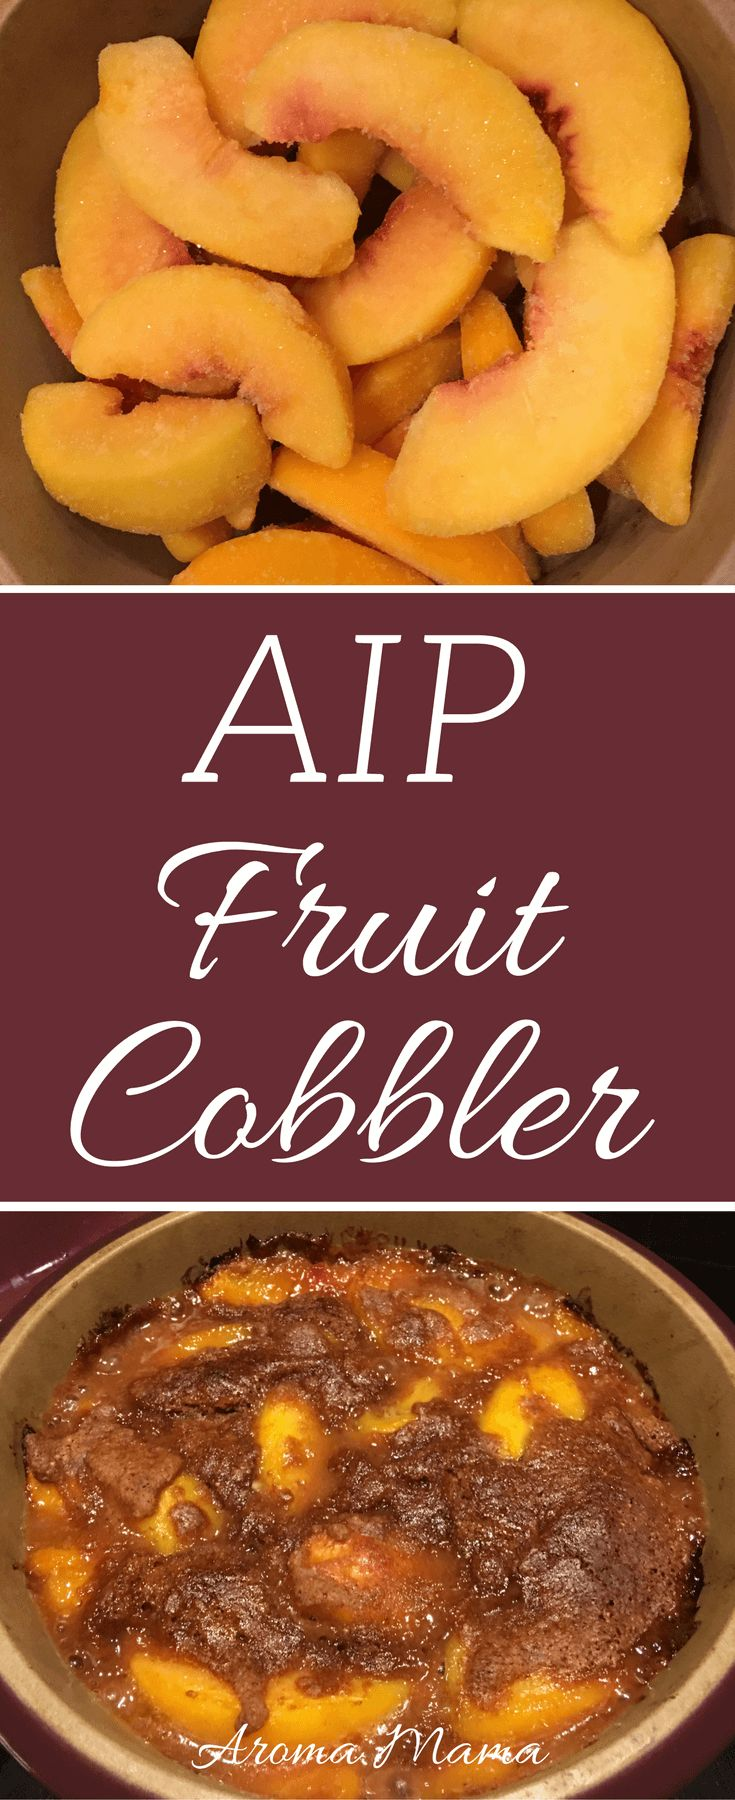 A fruit cobbler recipe that is AIP or Autoimmune Paleo compliant. Use your favorite fruit of choice. My favorites are peaches and blueberries! It's a dessert or healthy snack and kid-approved. via @thearomamama